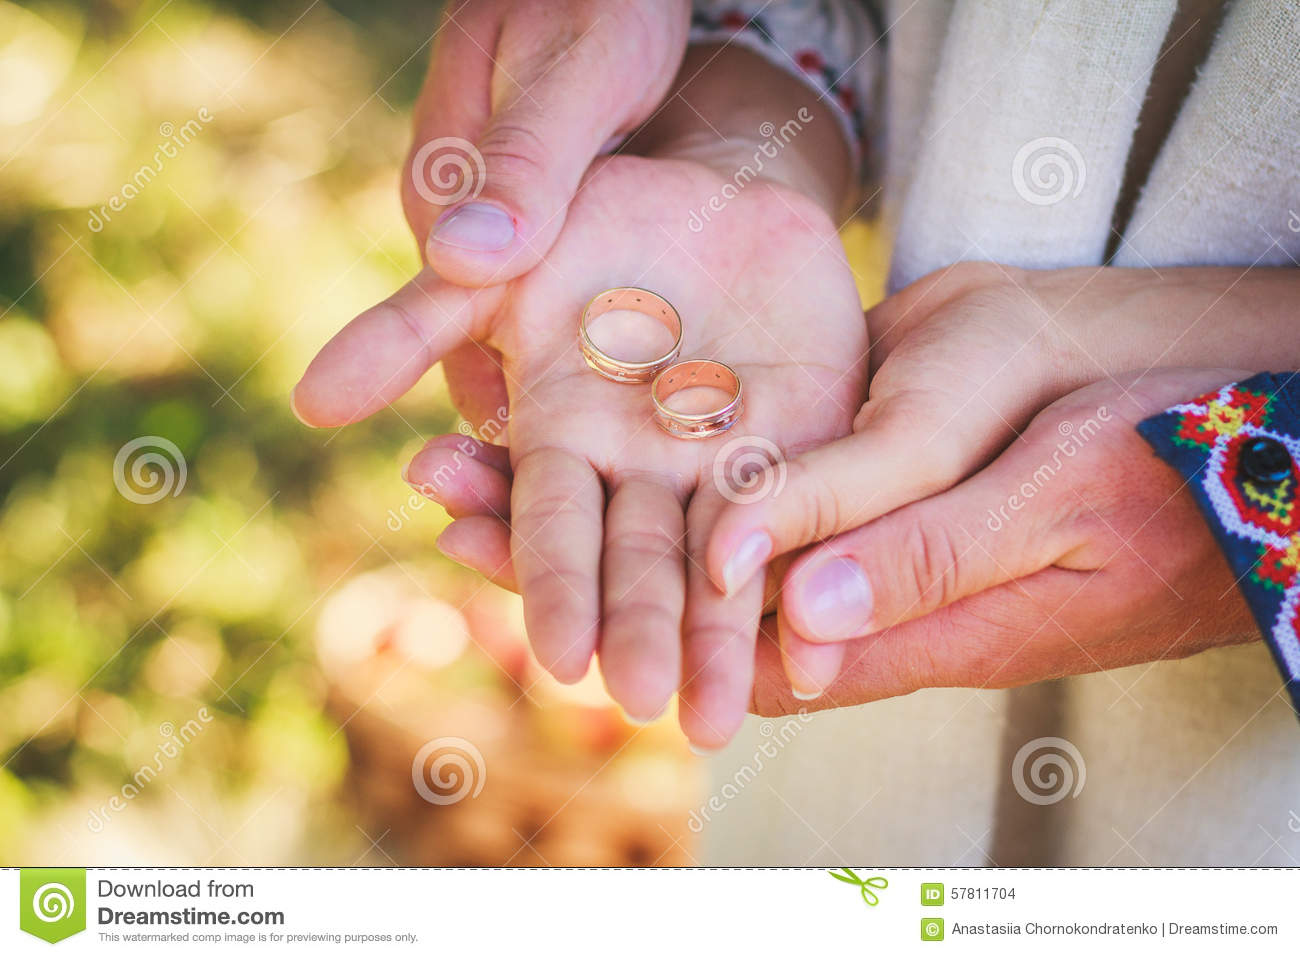 Couple Holding Wedding Rings In Their Hands Stock Photo - Image of ...